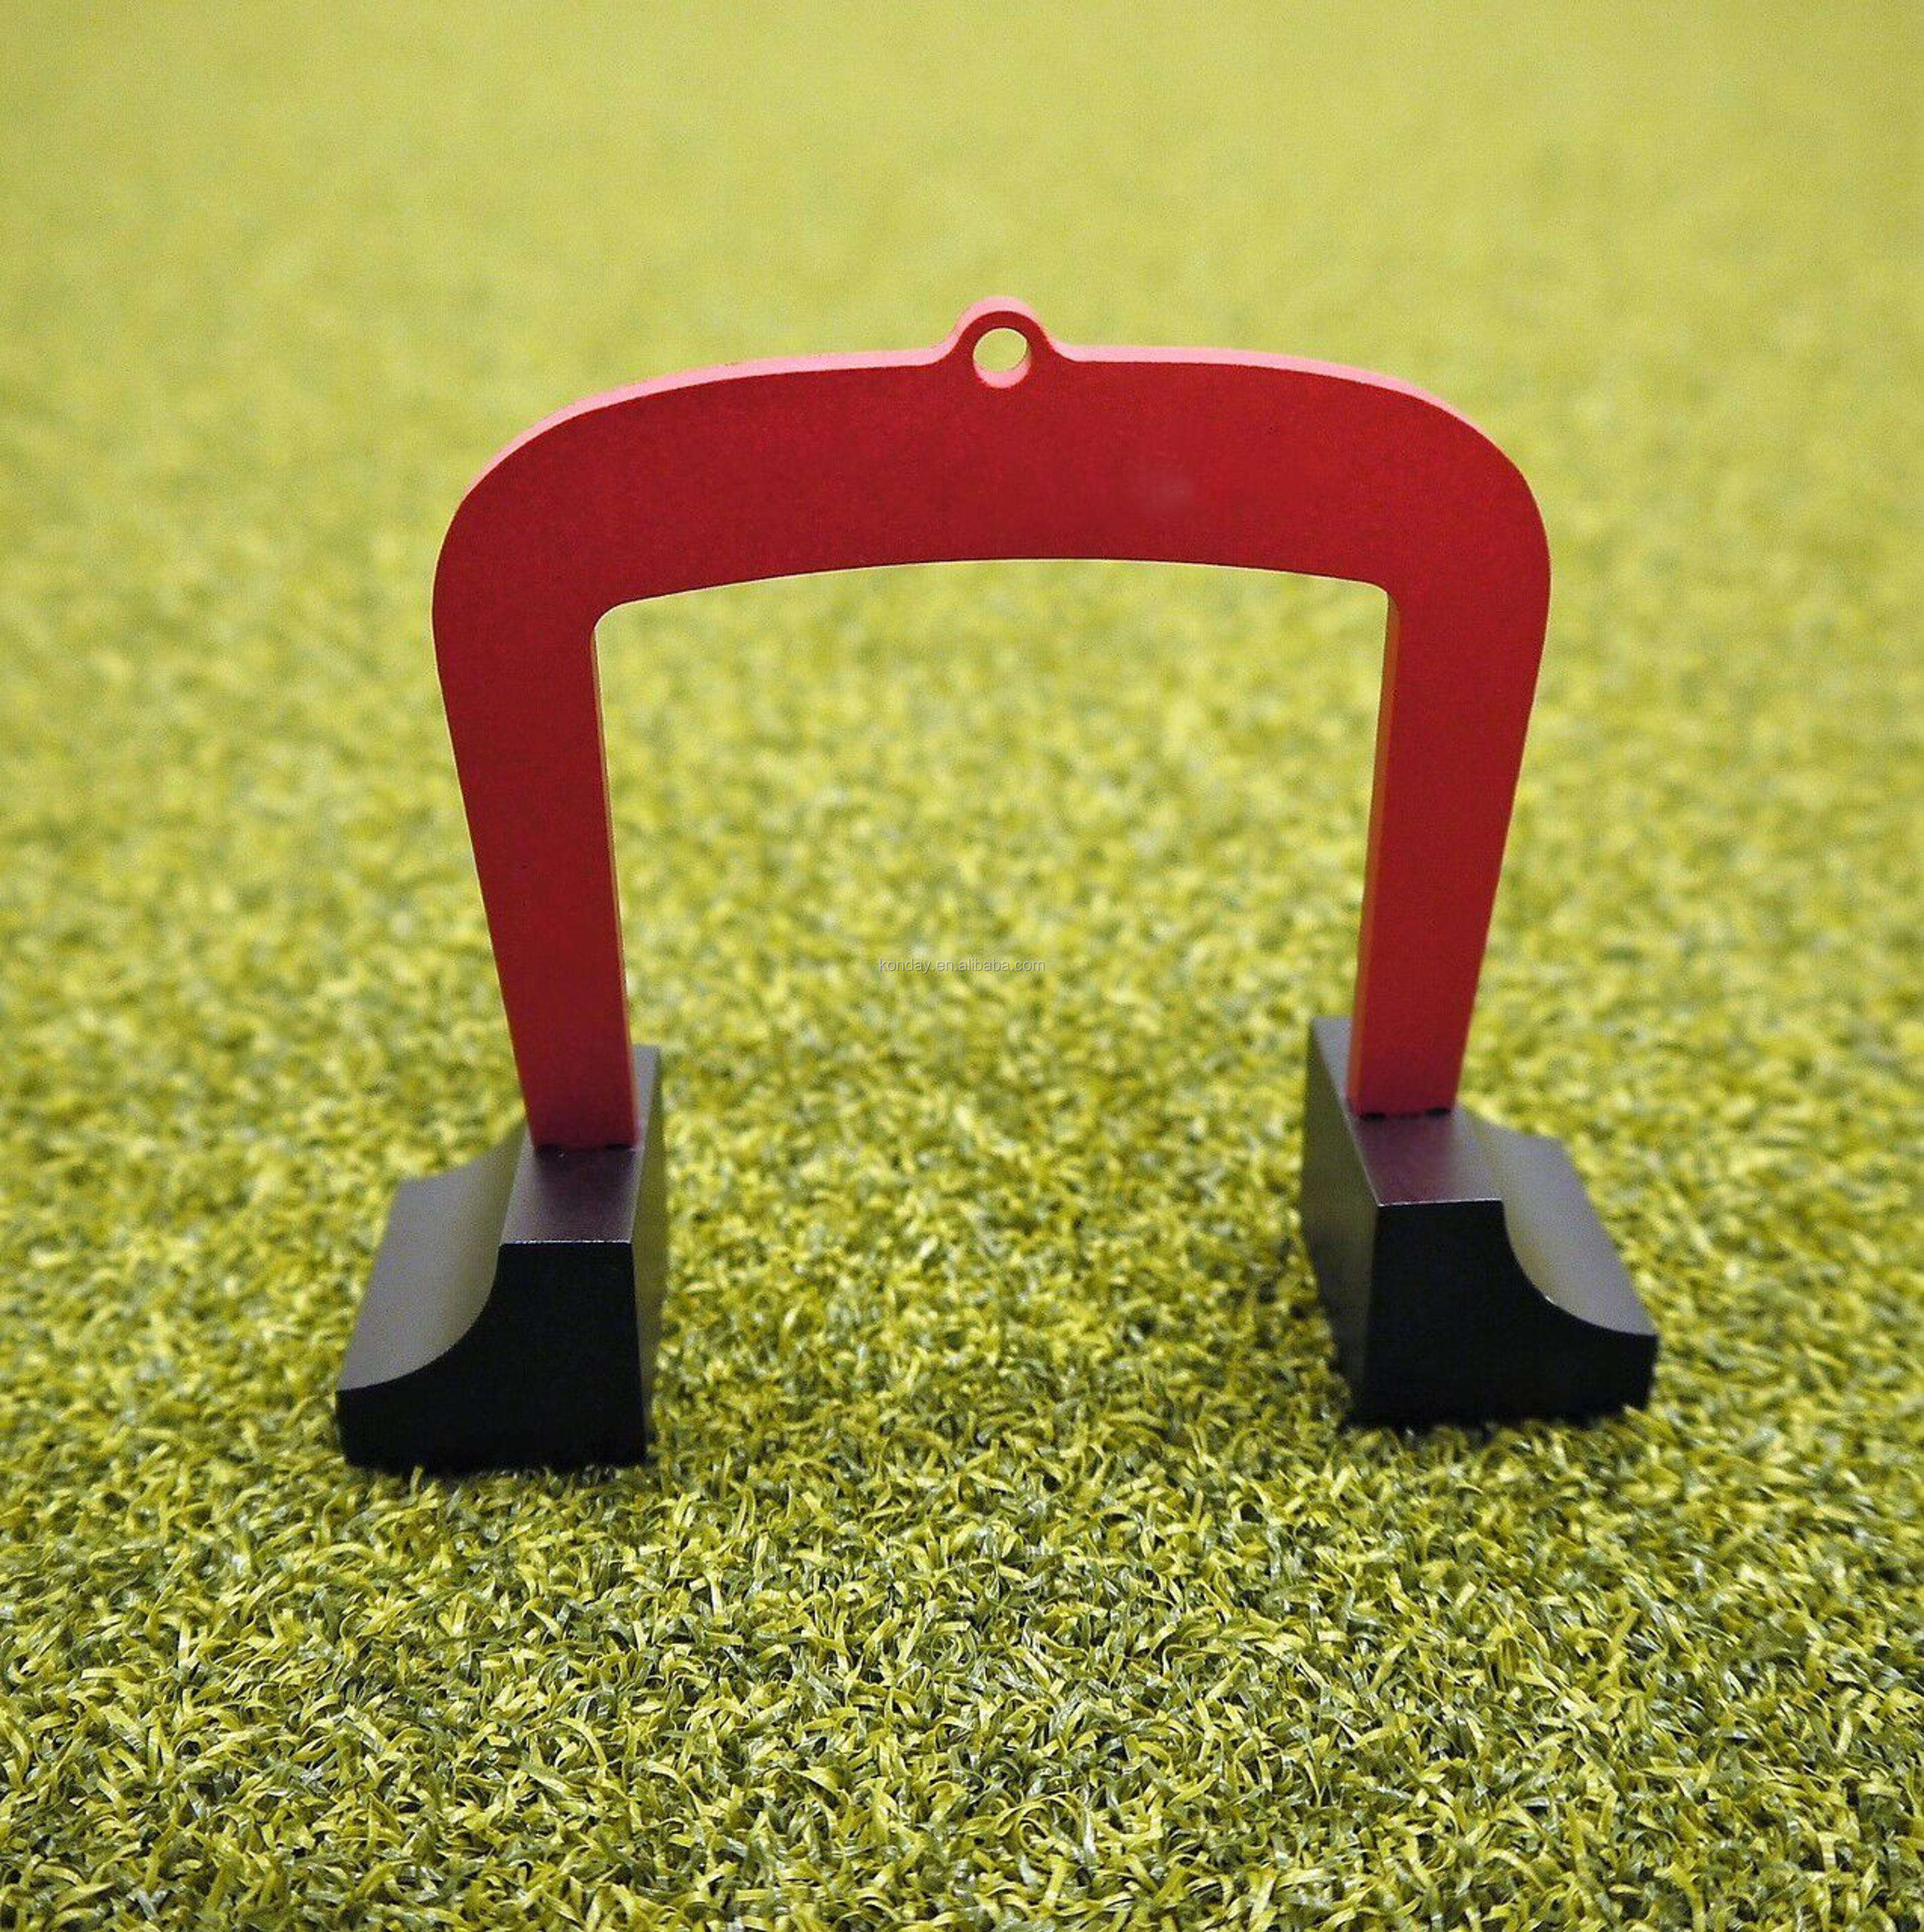 Putting Aid for Golf - Portable Golf Putting Alignment and Aim Practice Training Tool